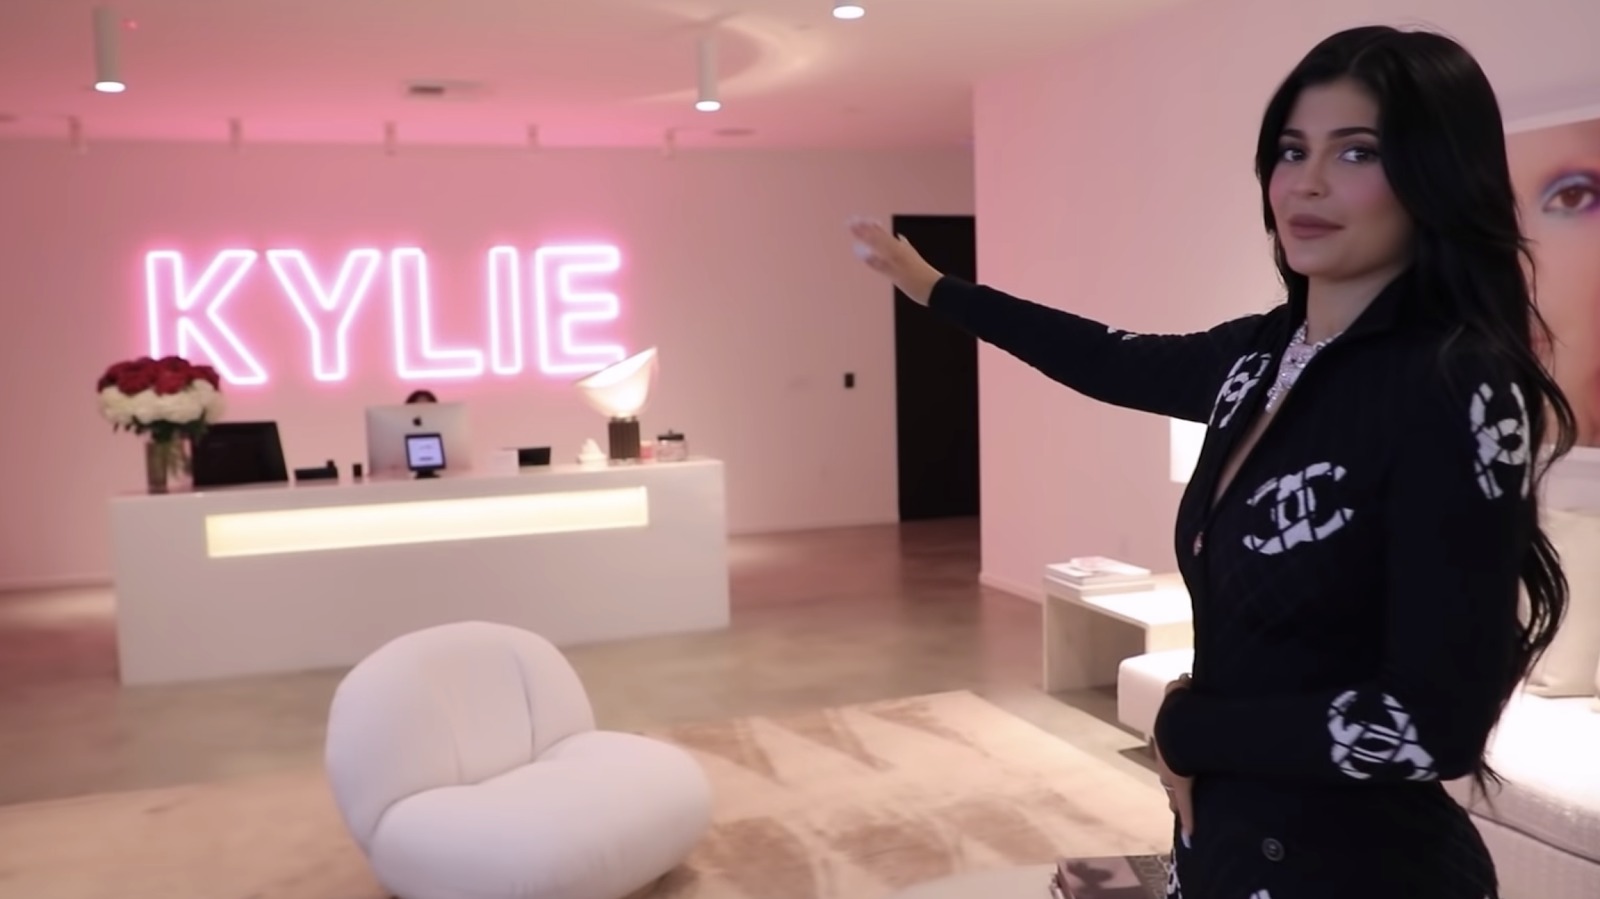 Kylie Jenner pointing to her cosmetic brand logo -KYLIE